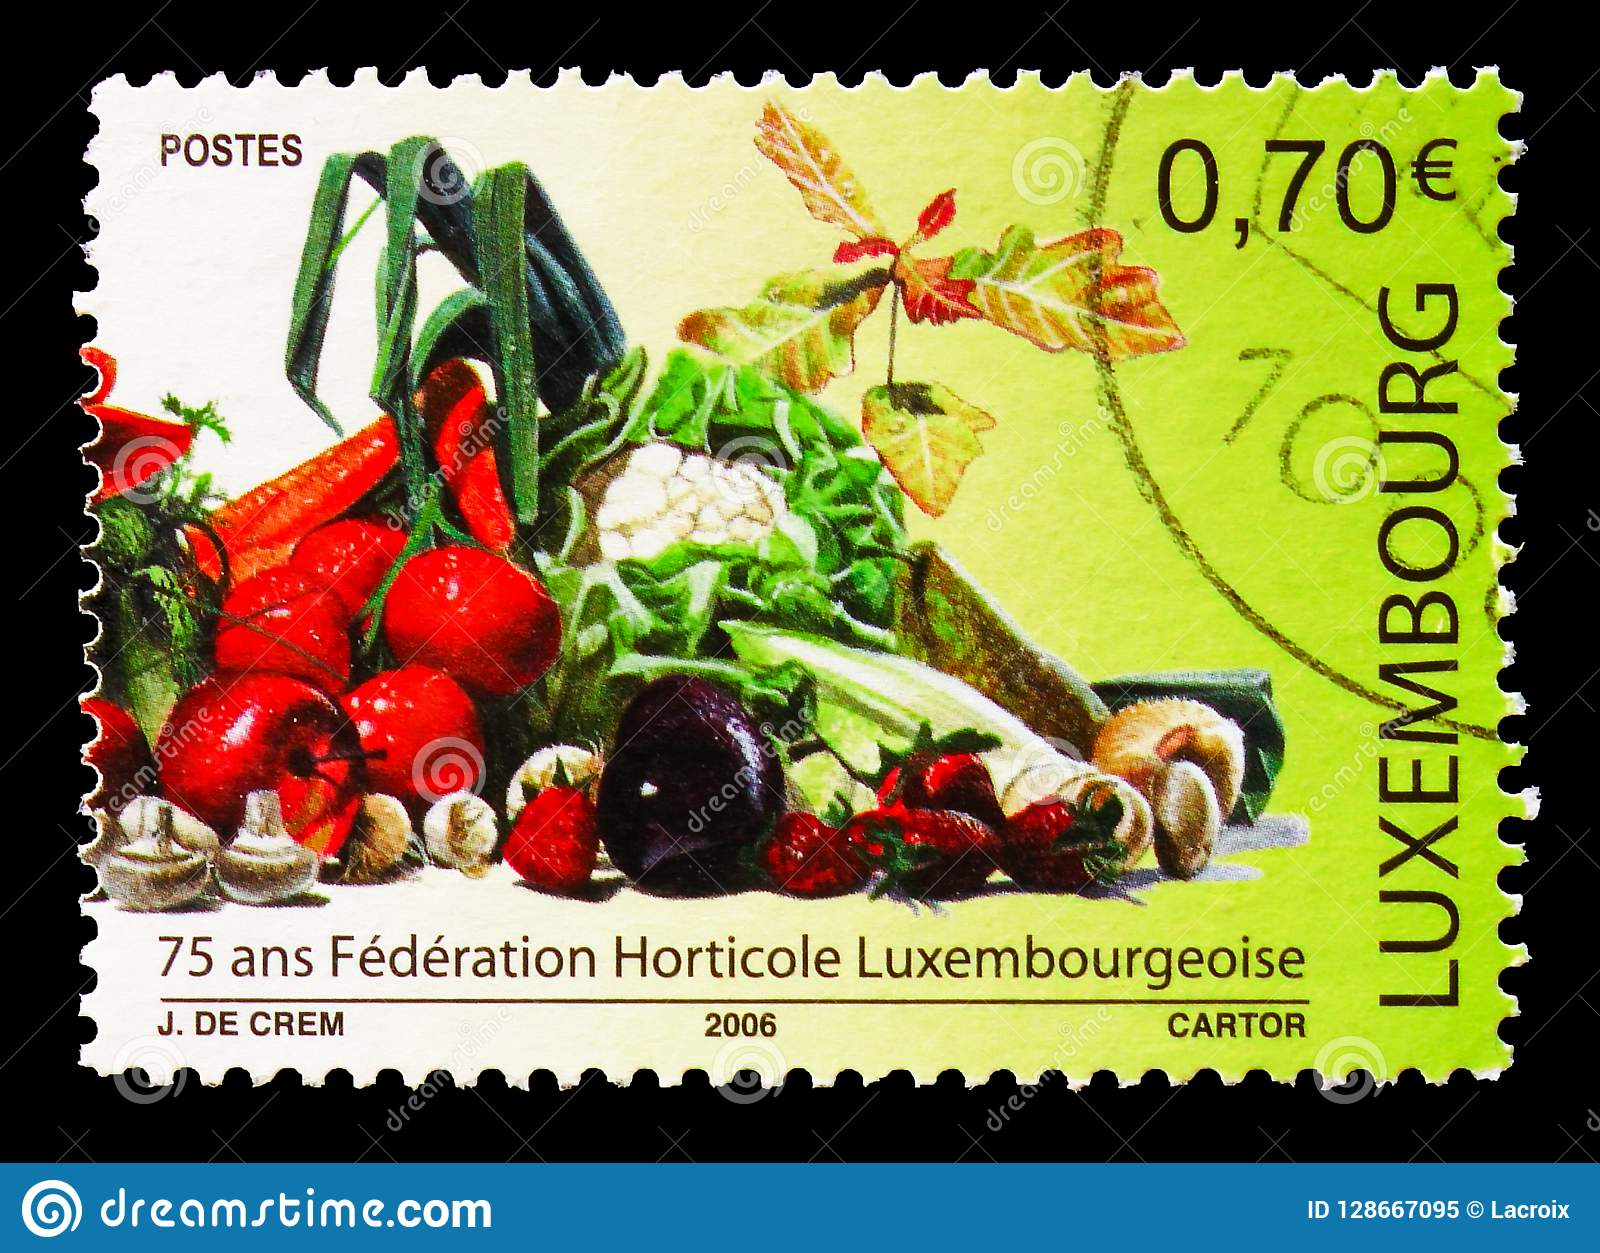 75th Anniversary of the Luxembourg Horticultural Federation, serie, circa 2006